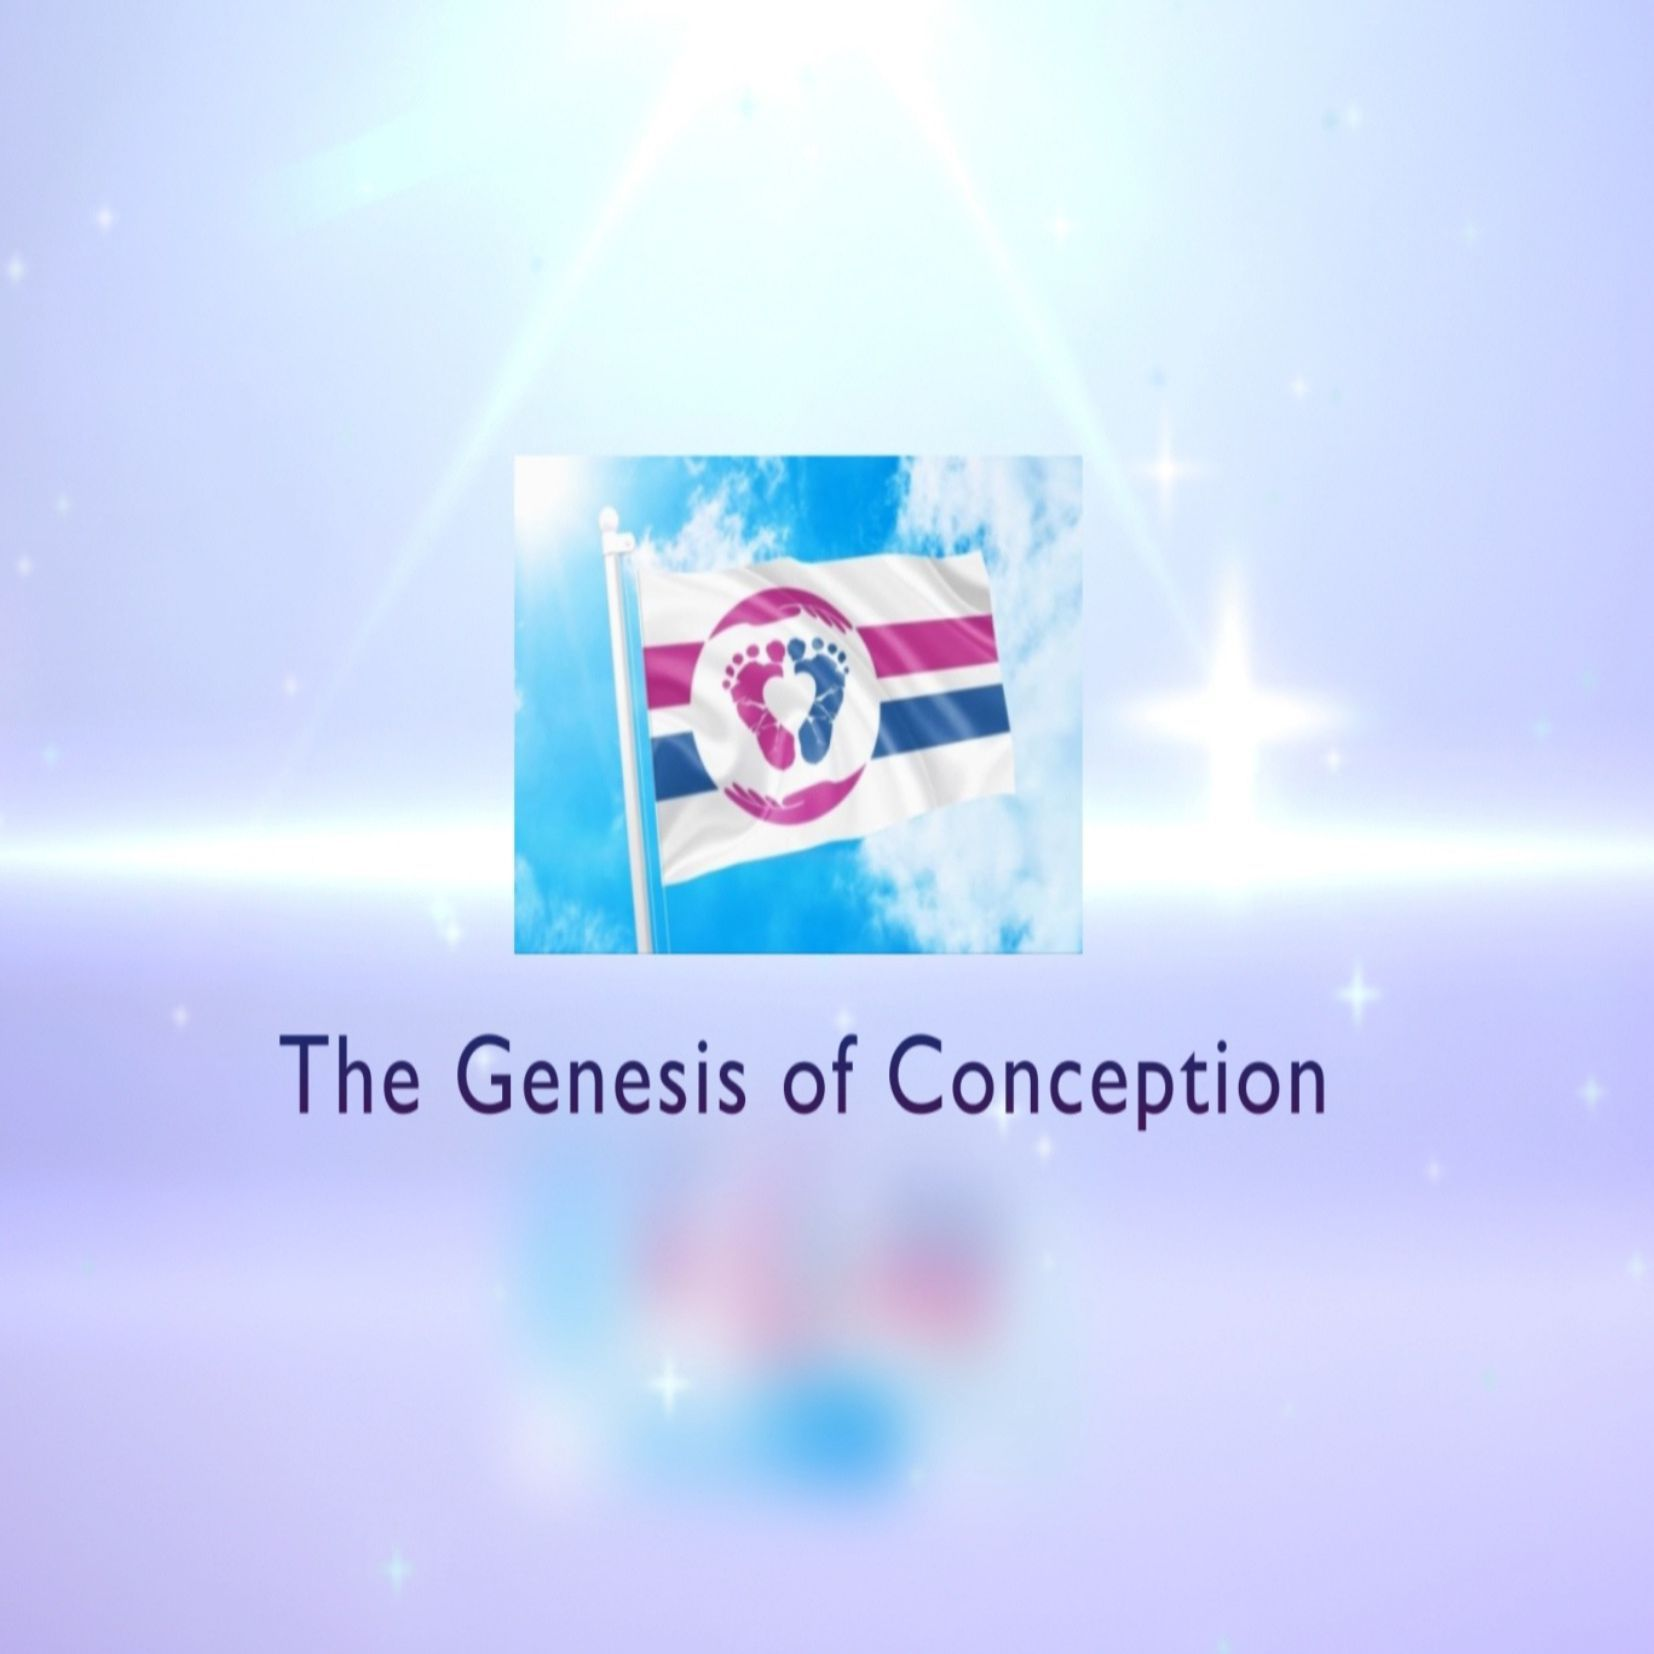 The Genesis of Conception